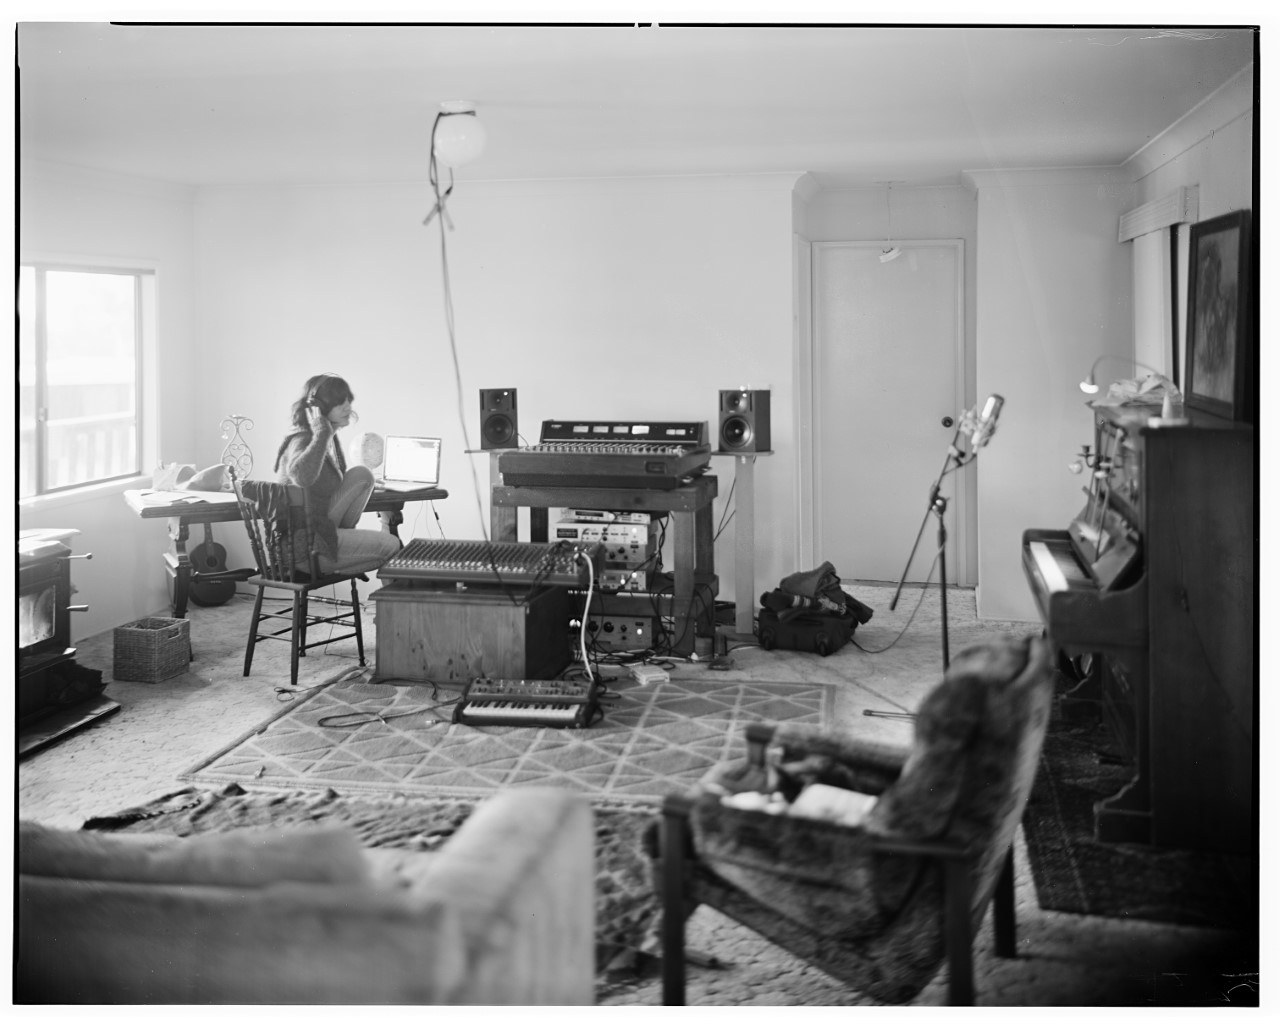 KANGAROO VALLEY 2017 Just finished tracking all the instruments on Mark. Jon from next door grabbed his amazing old camera and took this photo . Thank you so much Mr Jon Frank for your beautiful presence in Sol Seppy now ,through one lens or another. I am so grateful.